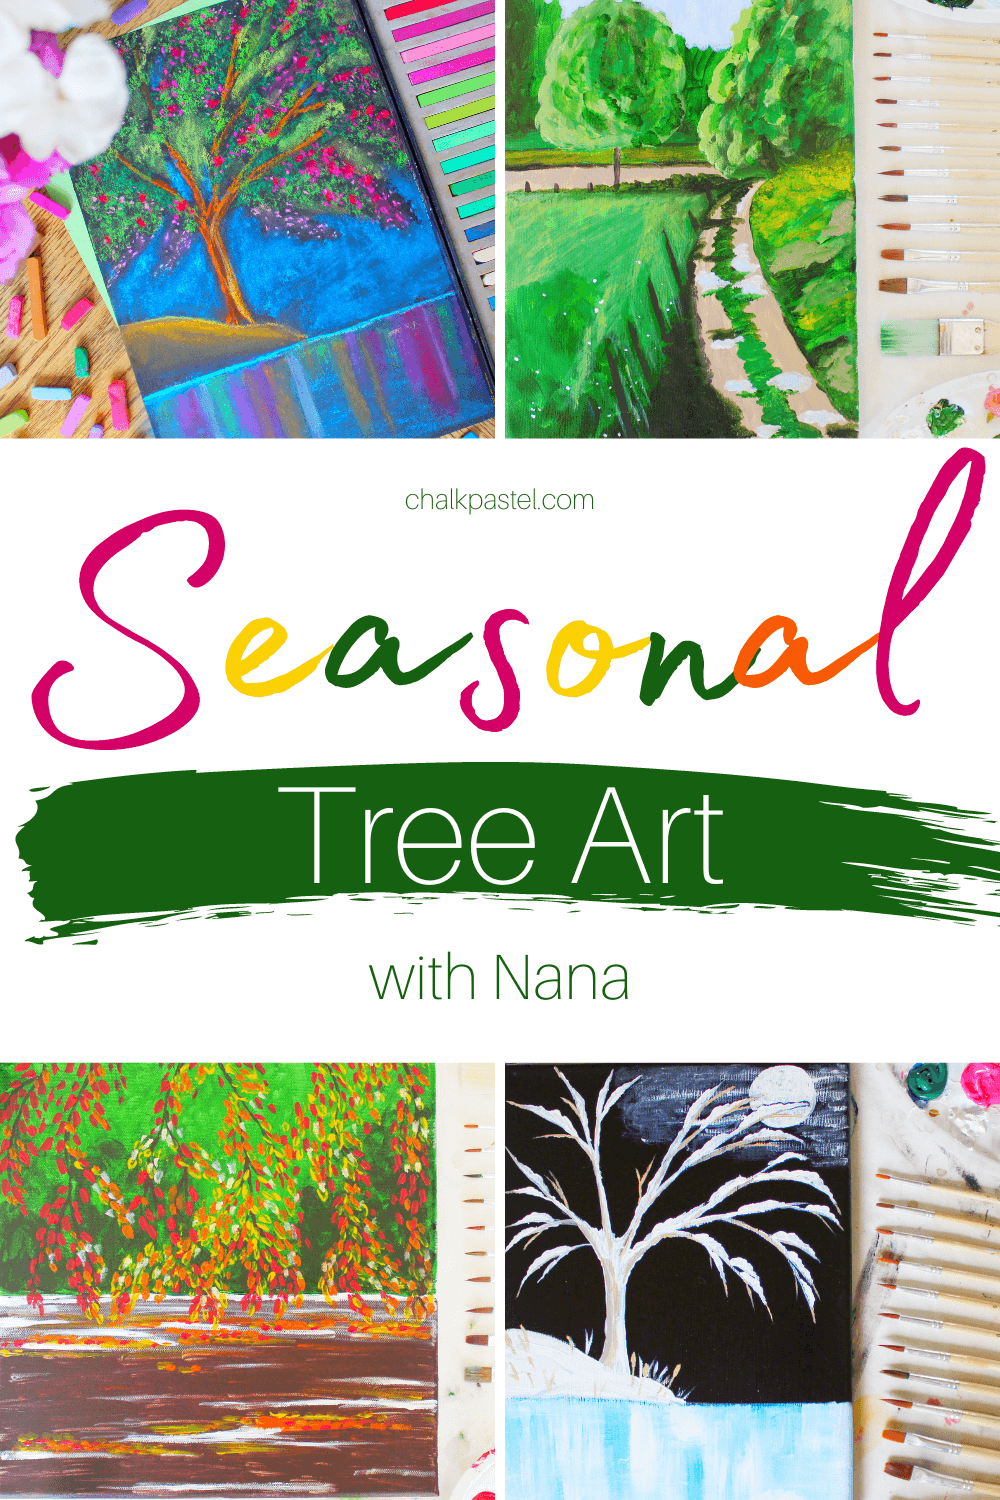 Seasonal Tree Art with Nana: Easy seasonal tree art with Nana is a perfect way to celebrate the four seasons or add to your next tree nature study! Spring, summer, fall and winter are all represented in a mix of chalk pastel and acrylic paintings. These lessons are perfect for kids and adults alike. So sit back, and let Nana guide you through the four seasons with trees. #fourseasonstreeart #fourseasonsnaturetreeart #treechalkpastel #springtreeartforkids #summertreeartforkids #falltreeartforkids #wintertreeartforkids #seasonaltreeartforkids #simplepaintedtreeart #easytreeartforkids